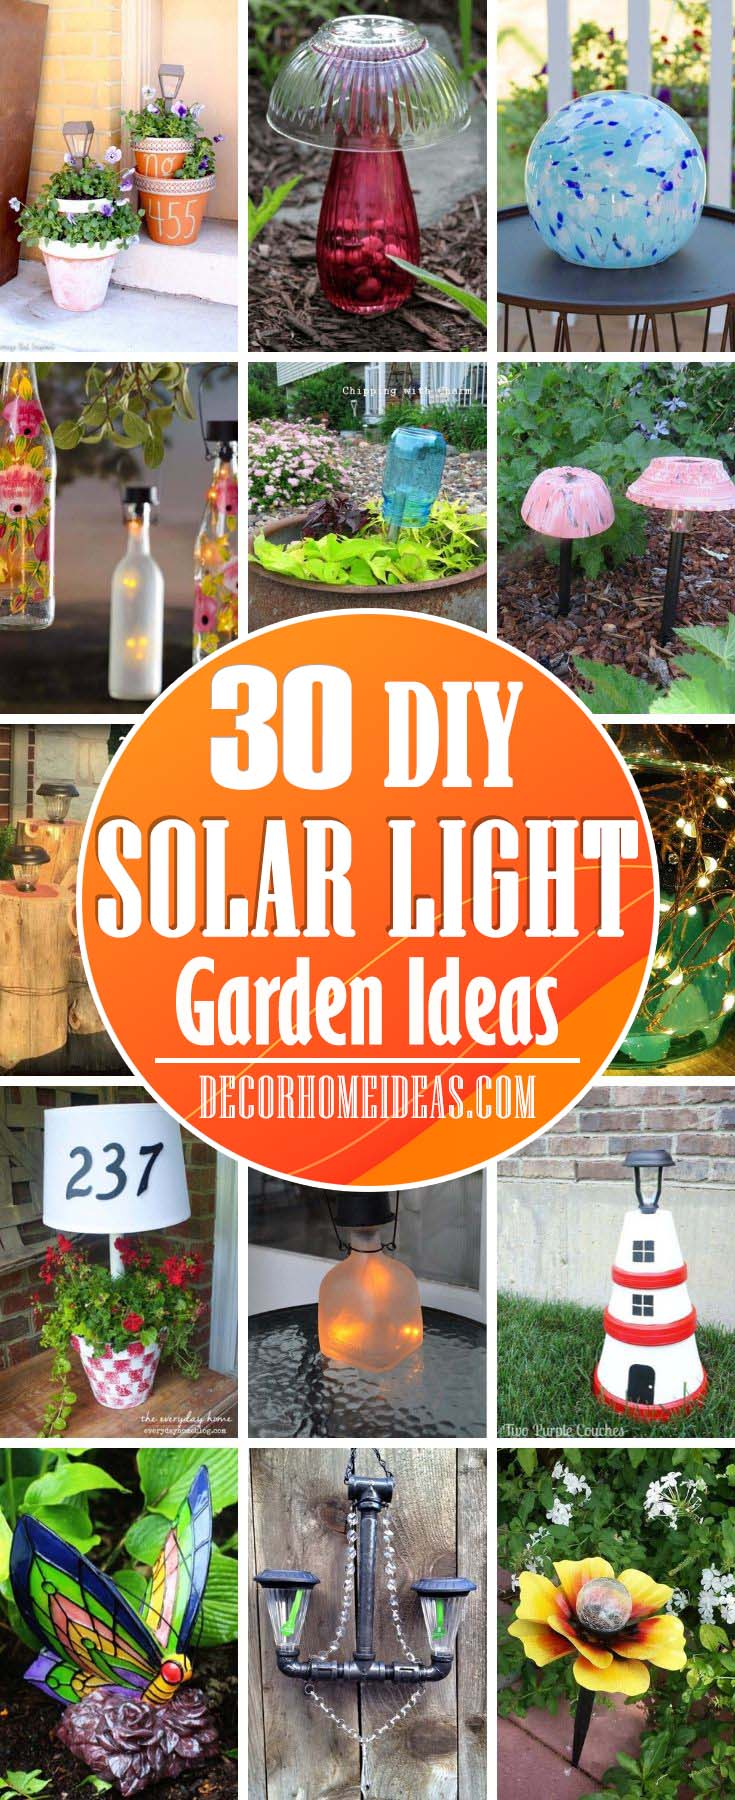 Solar Light Garden Ideas. Add more light to your garden or backyard with these creative DIY solar light ideas that are easy and cheap to do. #diy #solar #light #solarlight #garden #decorhomeideas